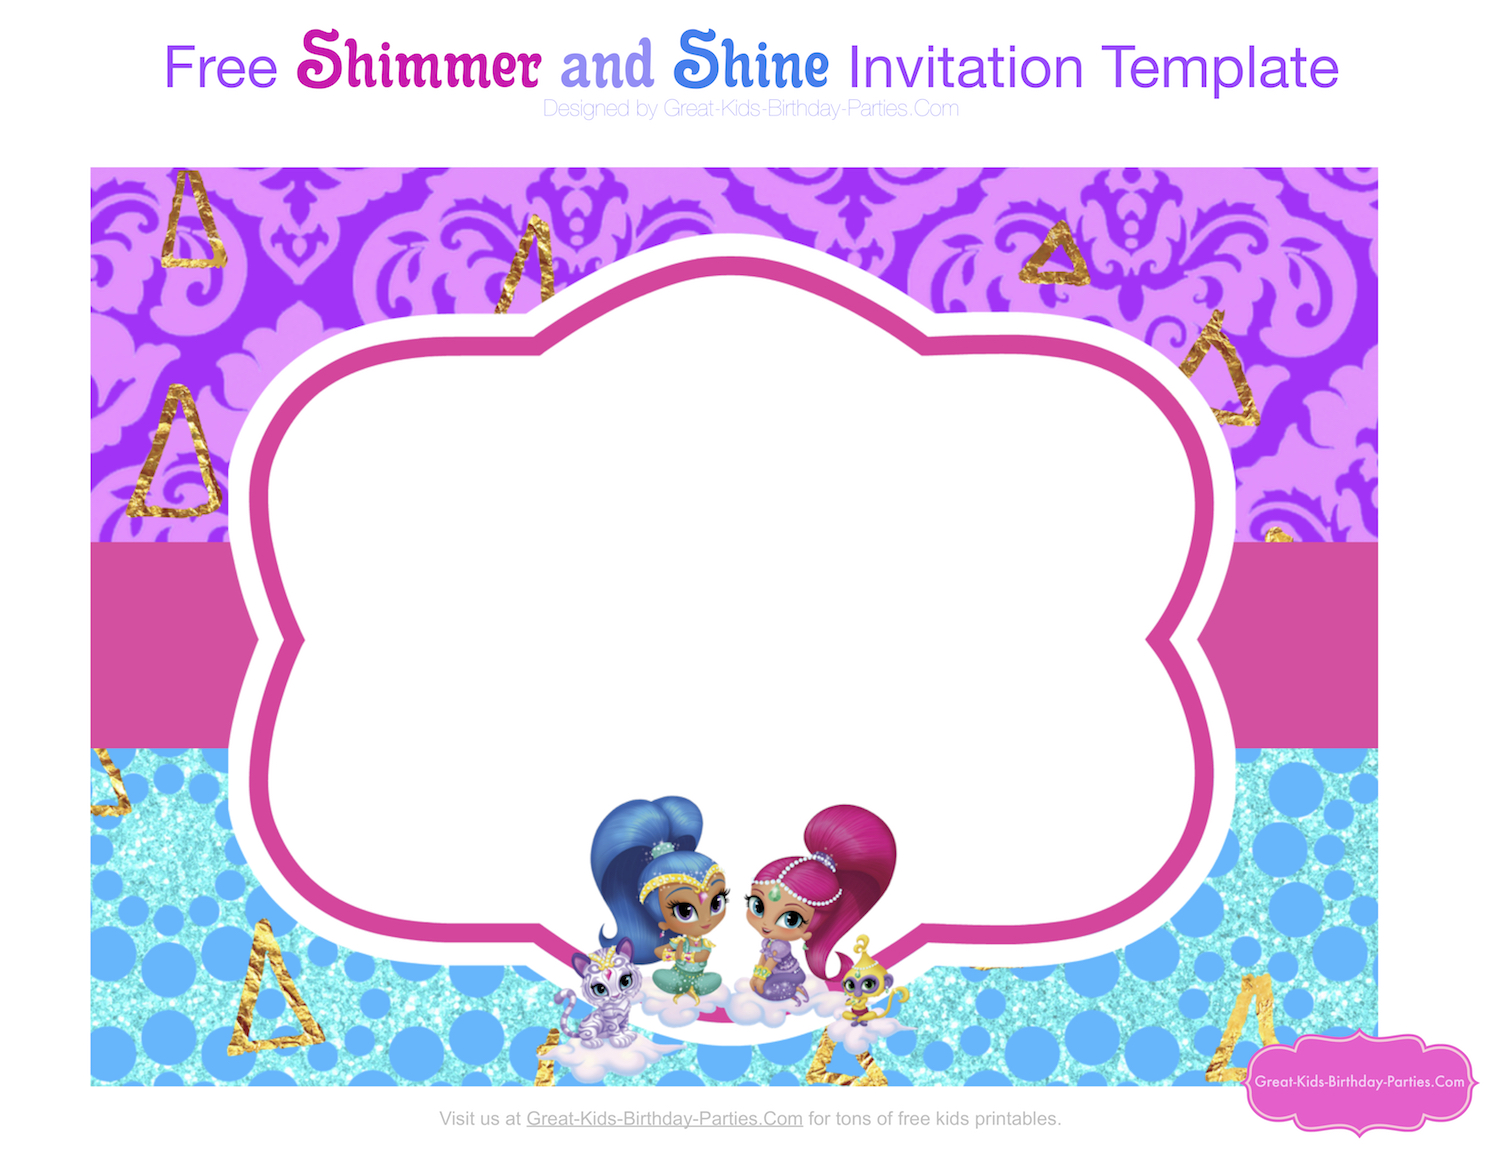 Shimmer and shine party shimmer and shine invitation template stopboris Gallery